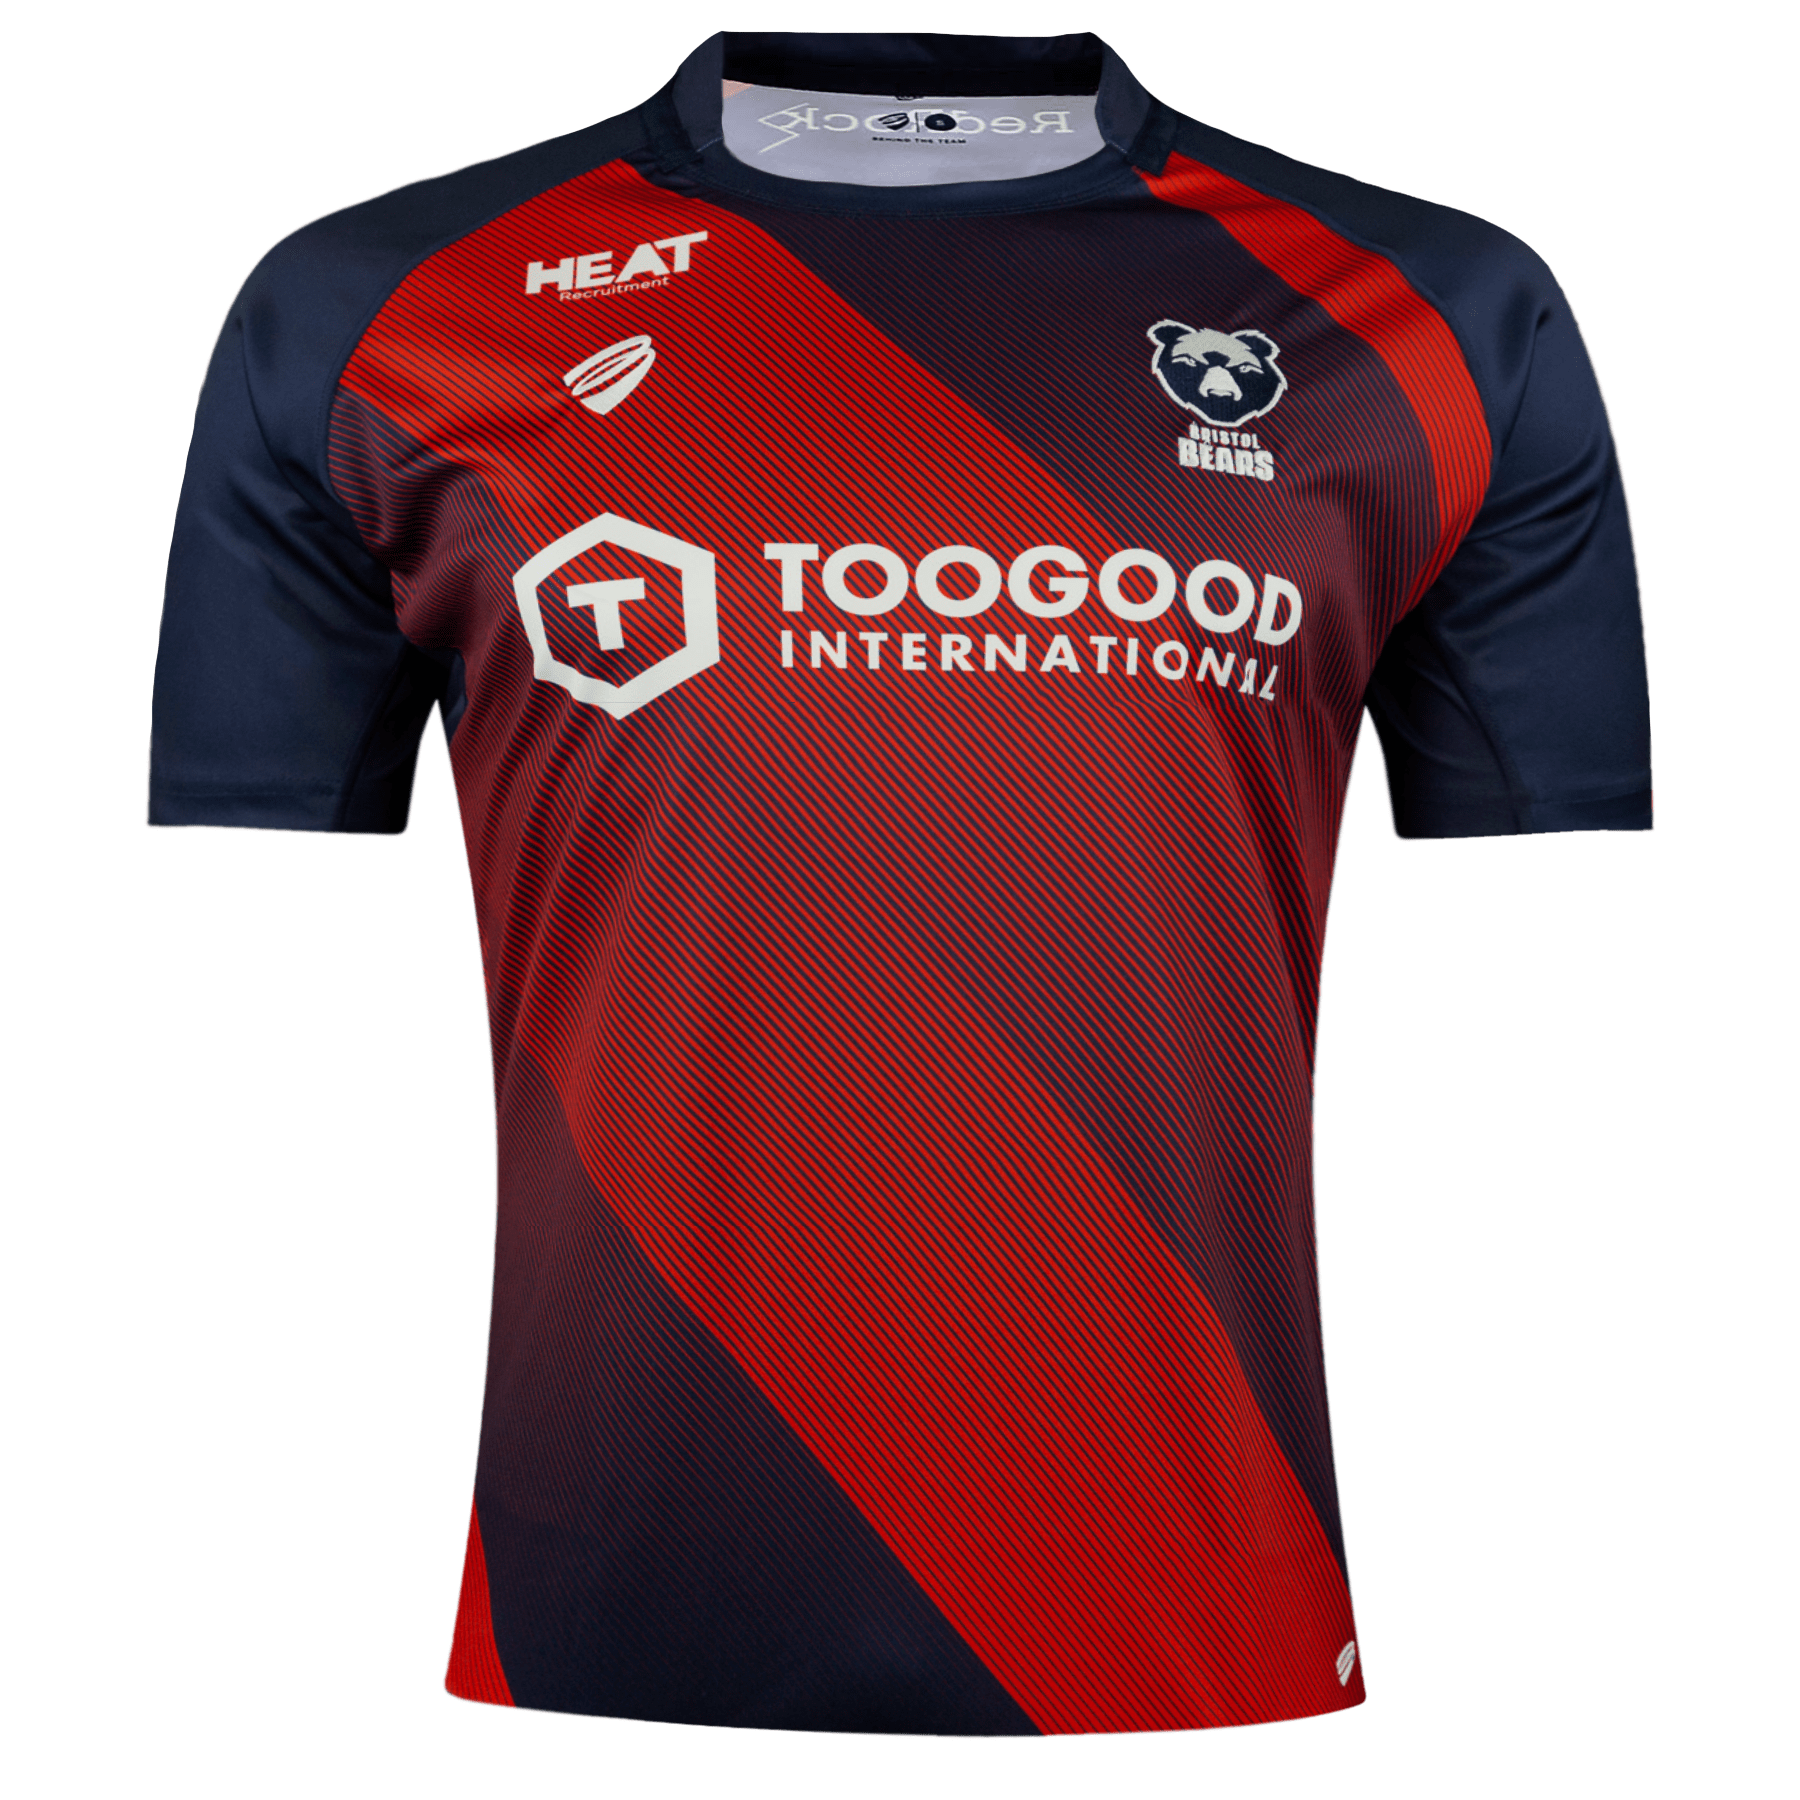 Bristol Bears Home Rugby Jersey Navy and Red